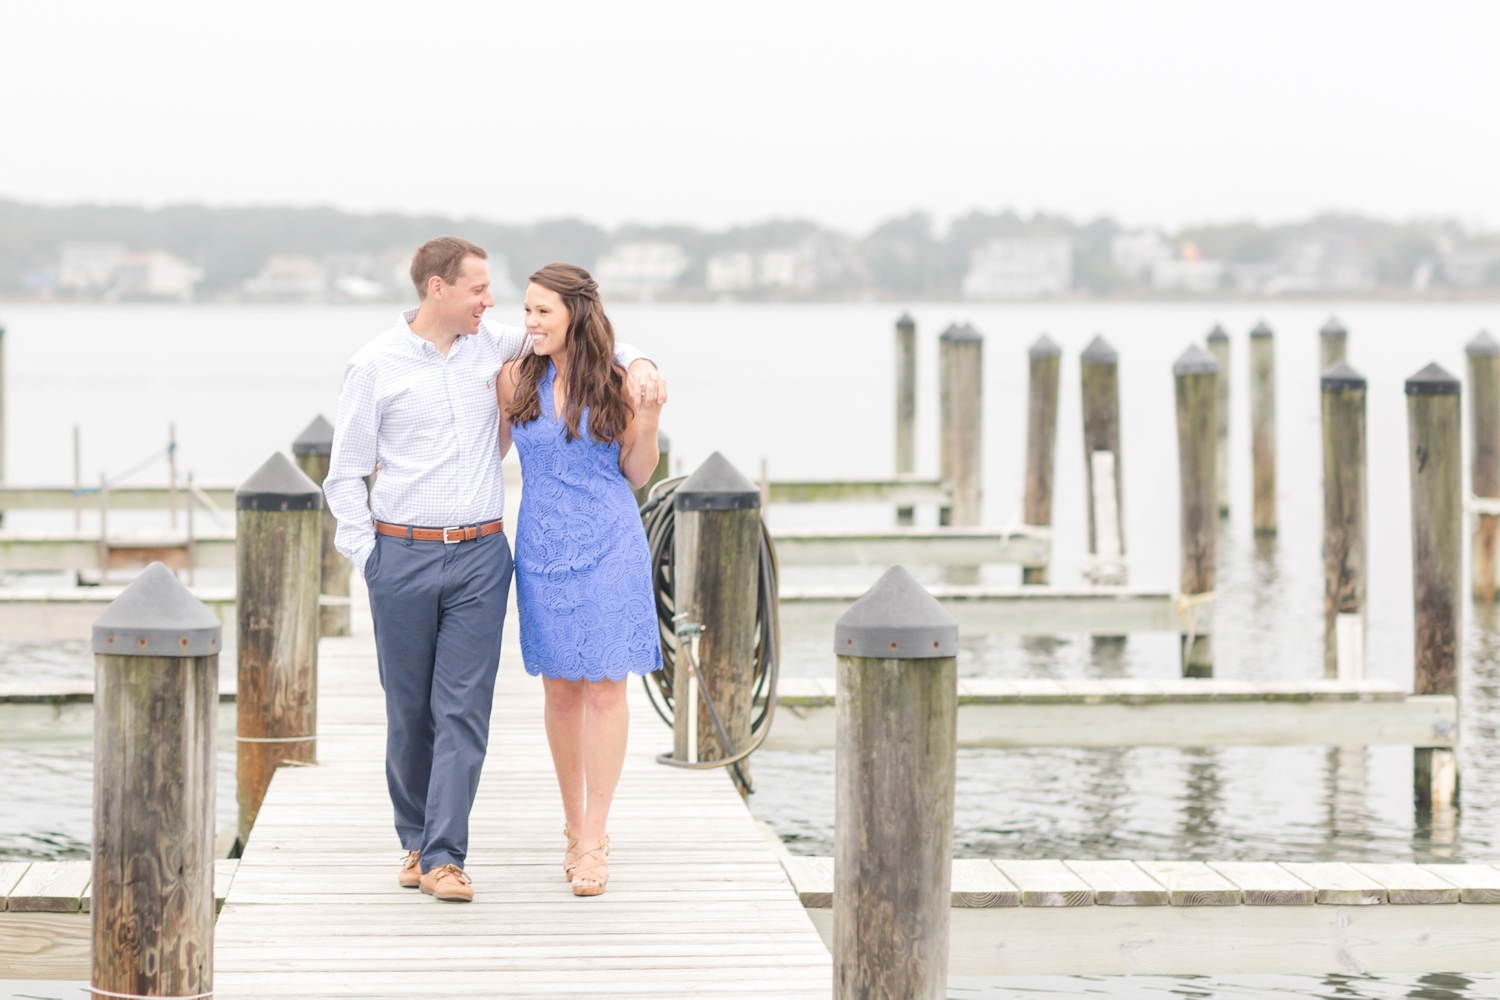 Susan Sturgeon & Stephen George Engagement-247_bethany-beach-engagement-shoot-delaware-maryland-photographer-anna-grace-photography-photo.jpg